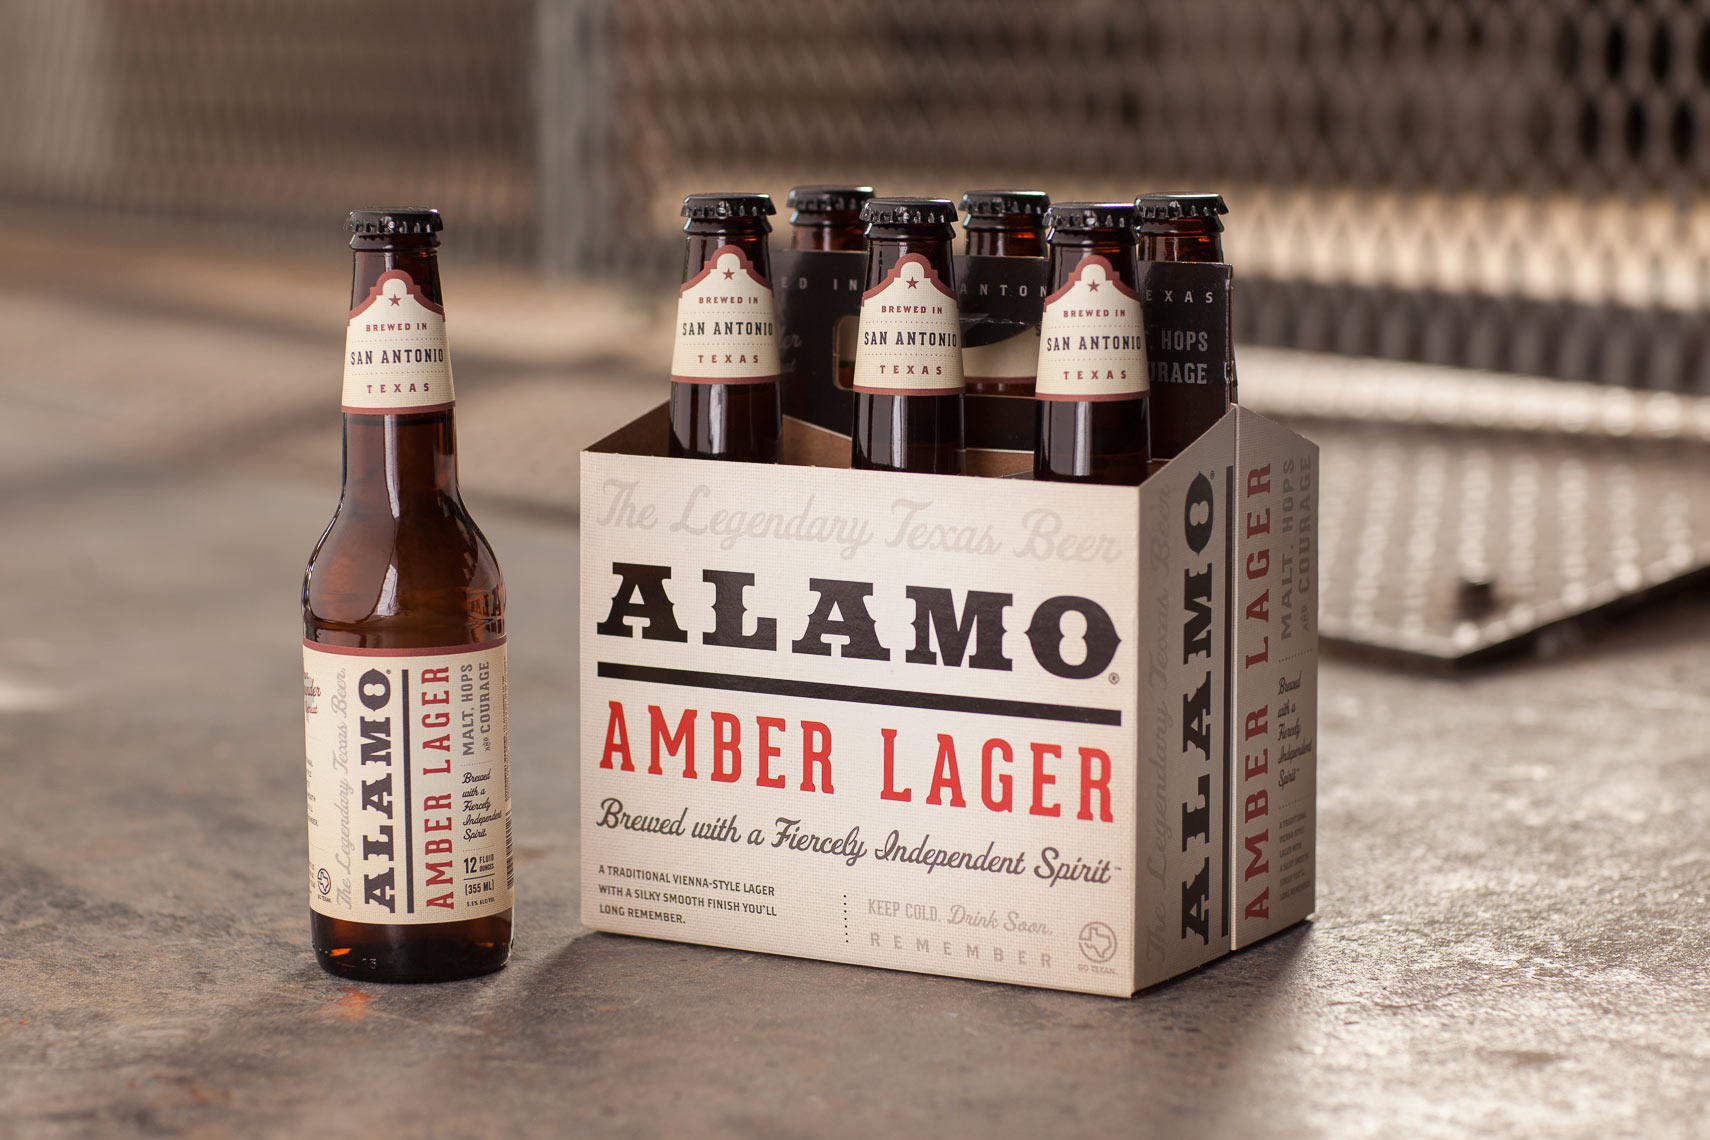 alamo-beer-san-antonio-texas-jason-risner-photography-1967